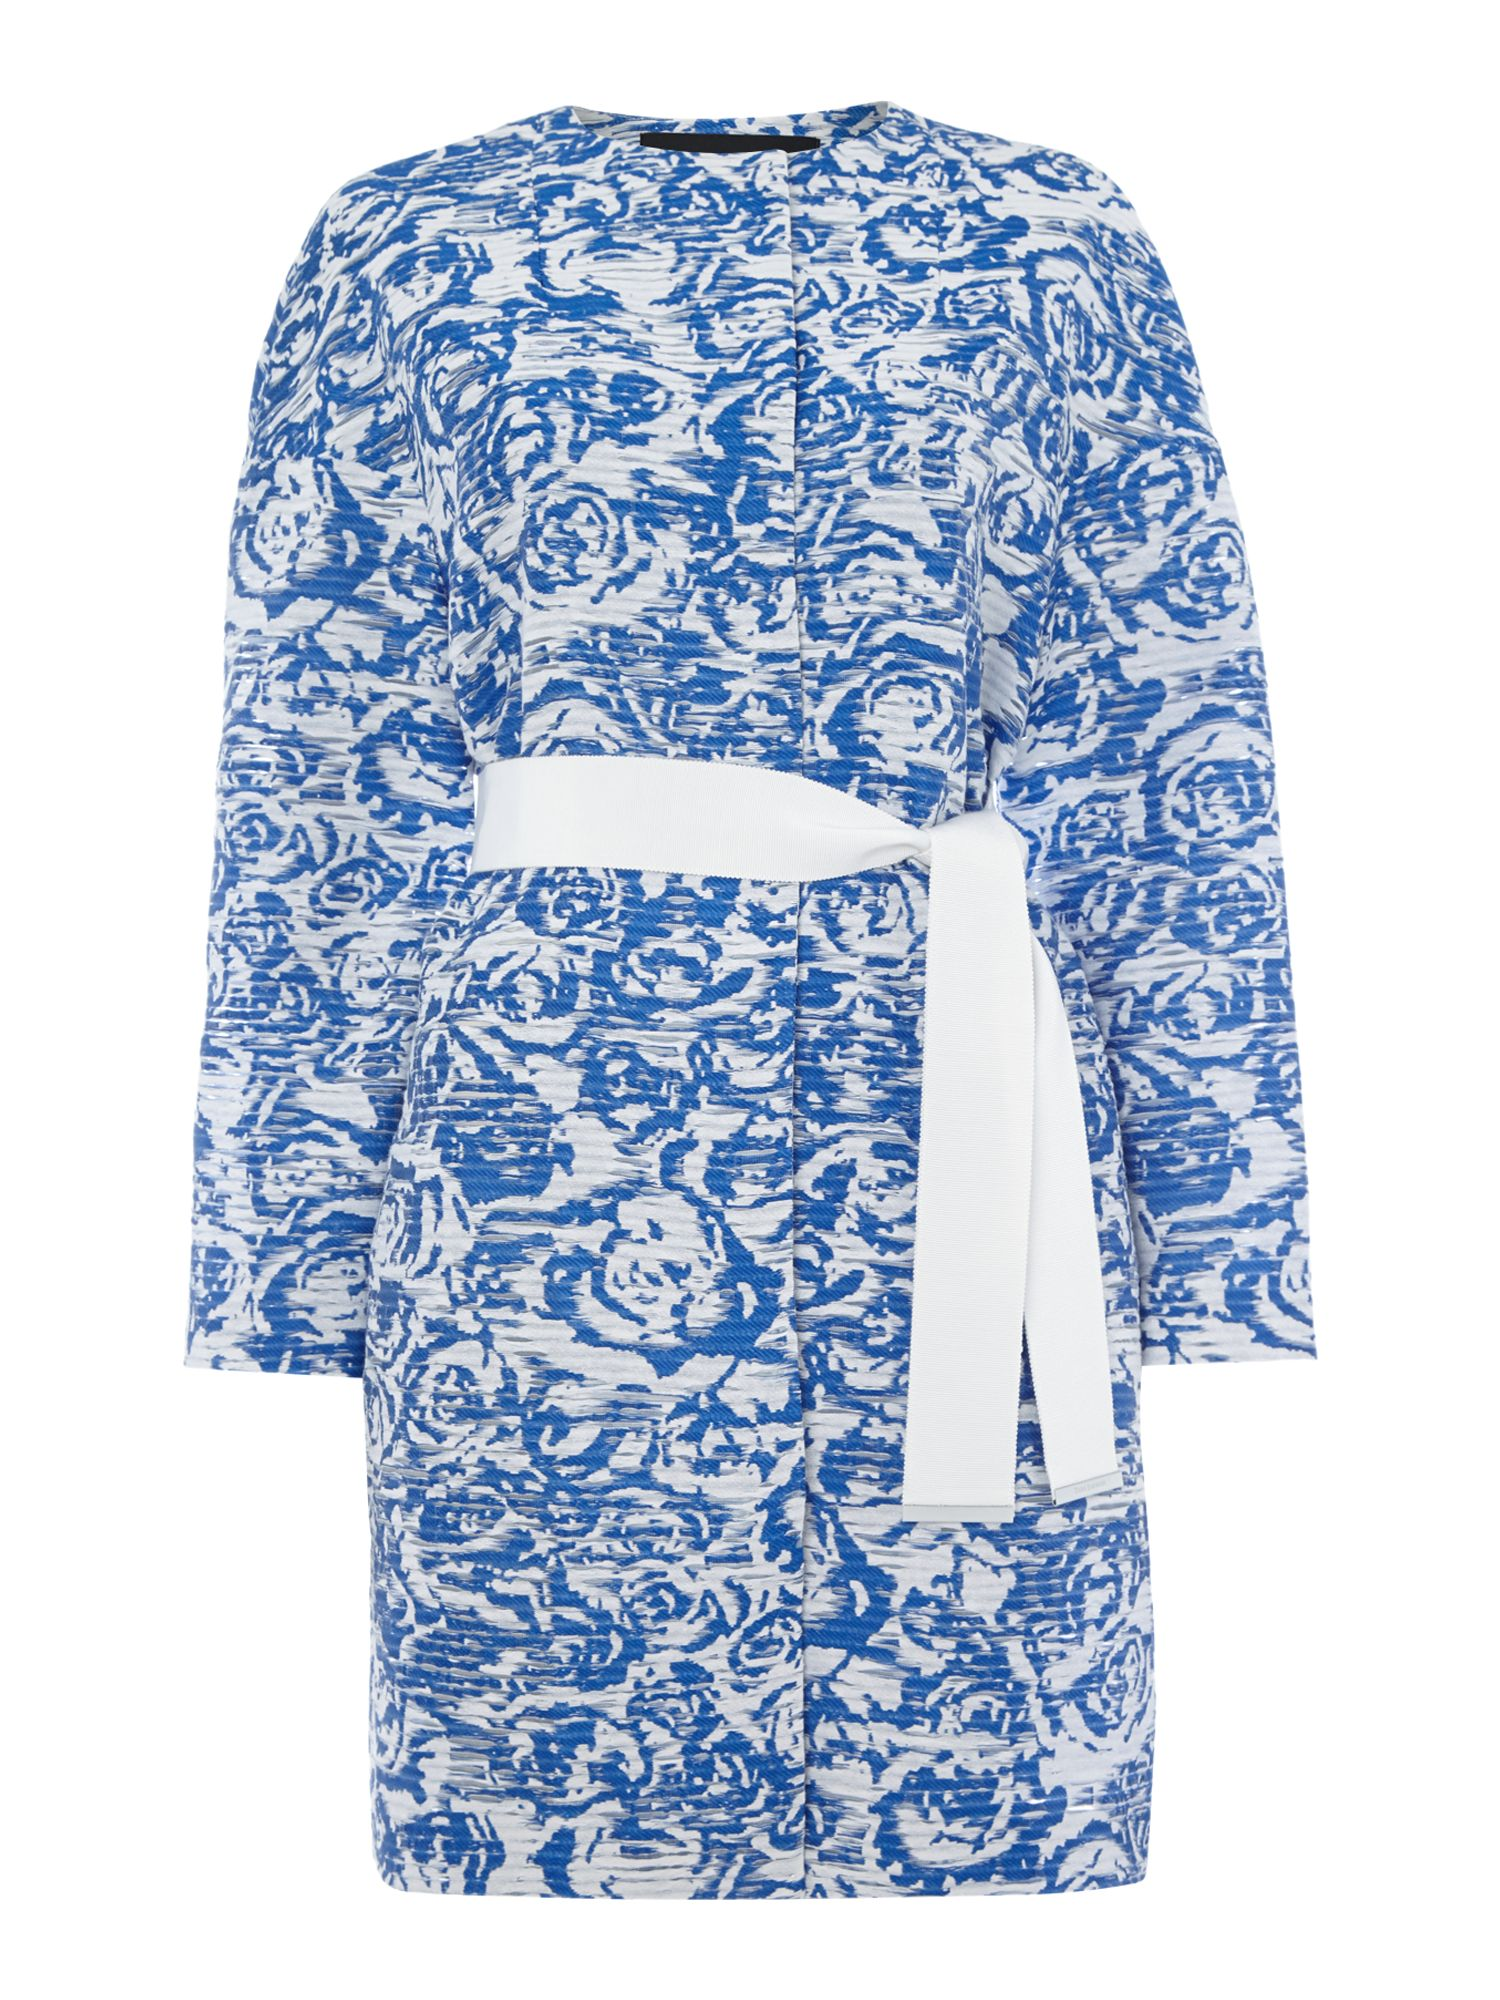 Tara Jarmon Rose print collarless, Blue